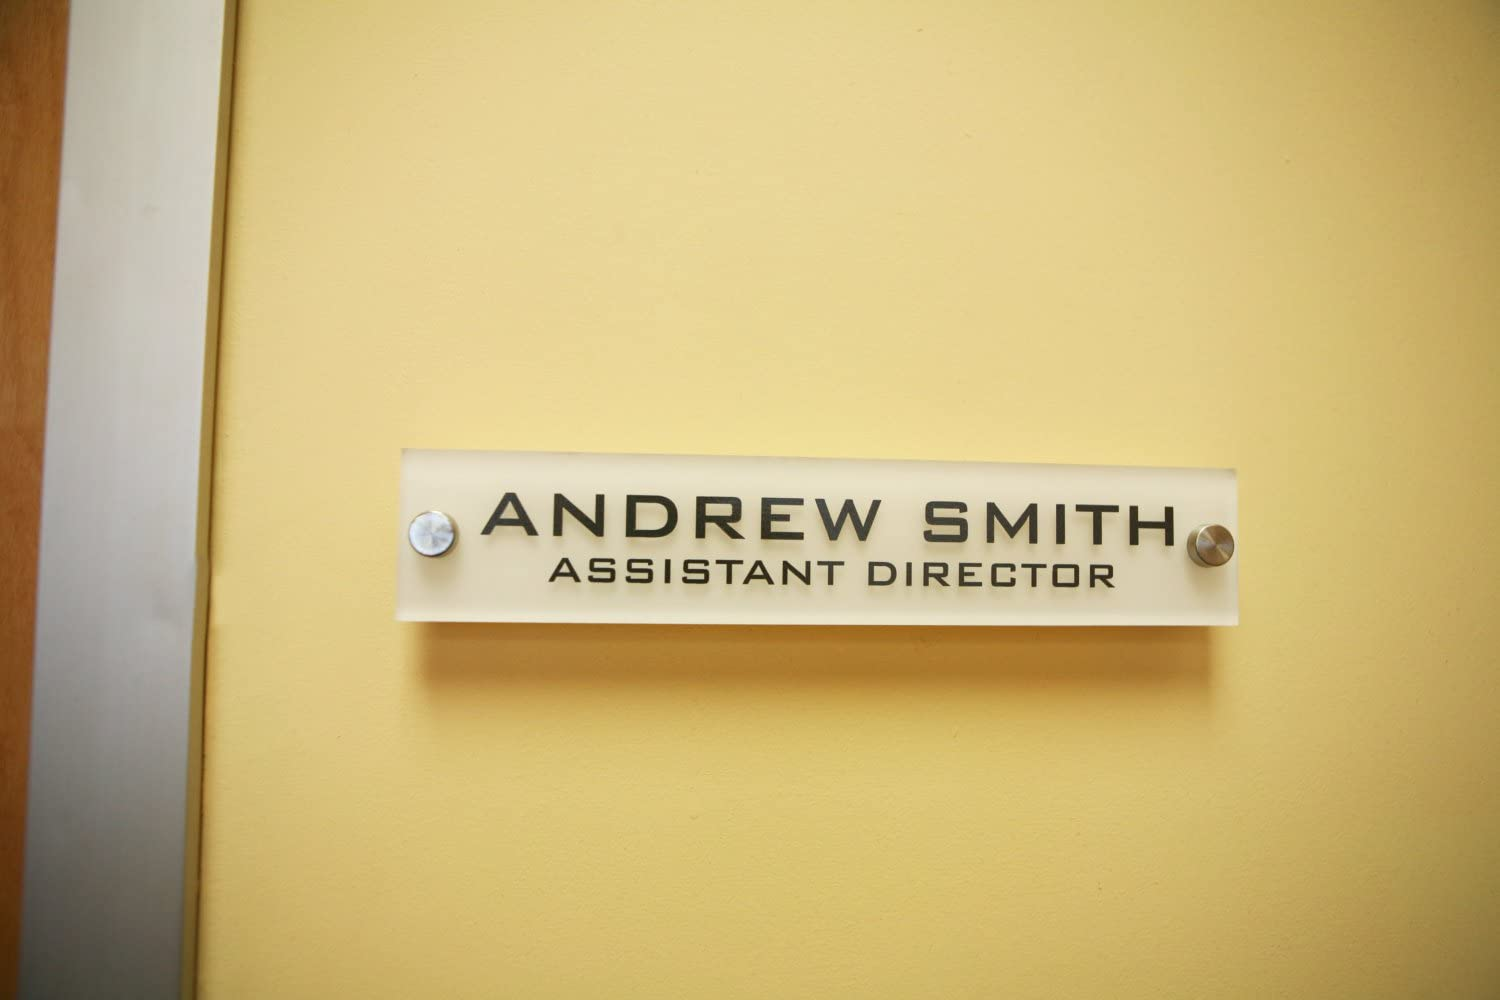 Personalized Office Wall Name Plate Sign. Modern Stainless Steel Legs (Frosted White)